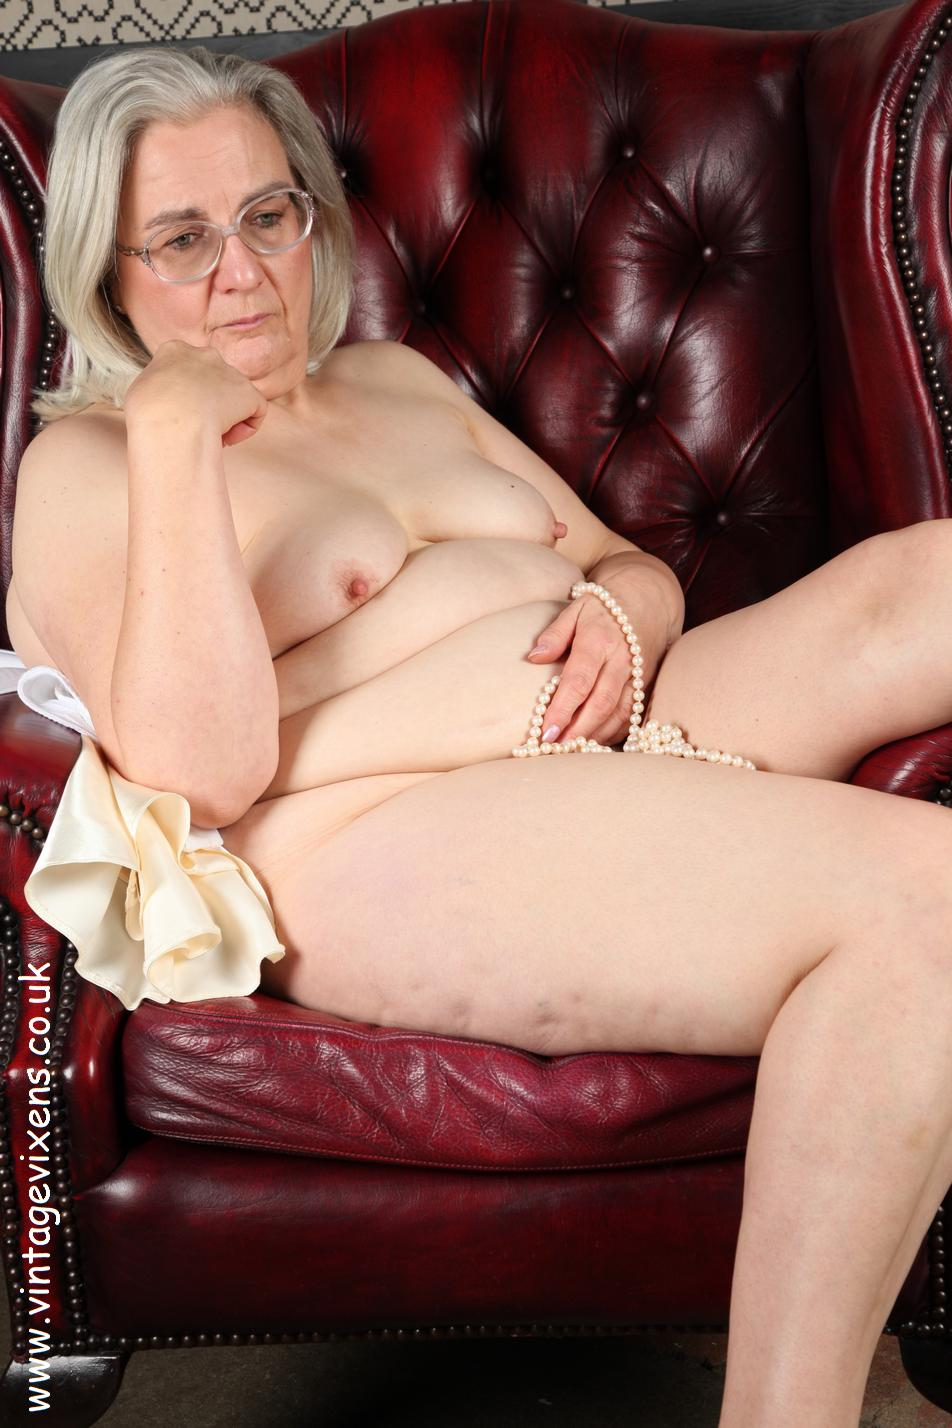 Archive Of Old Women Grannies New Photosets-8565